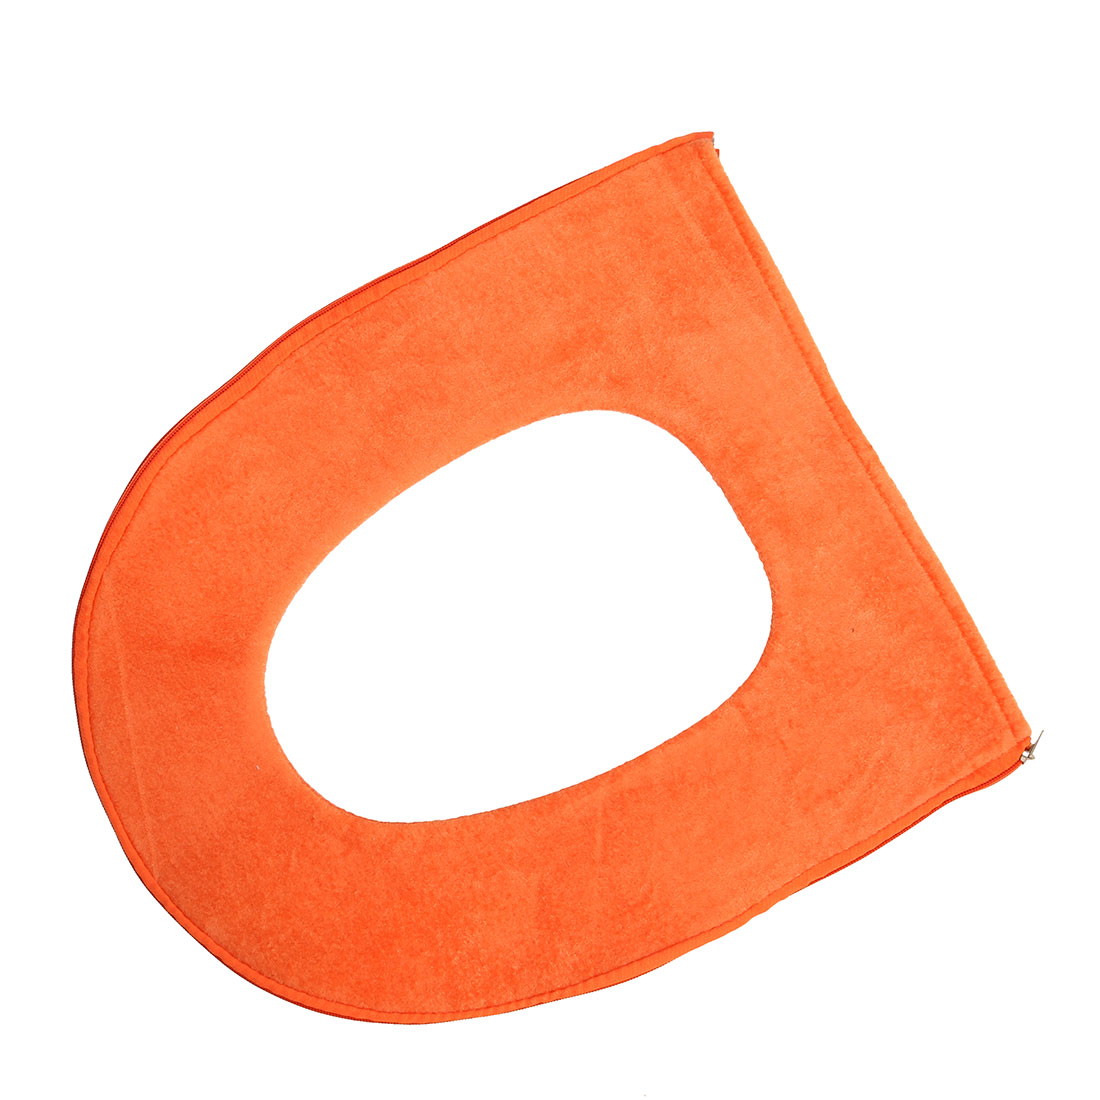 Bathroom Polyester Closestool Lid Soft Mat Pad Toilet Seat Cover Cushion Orange